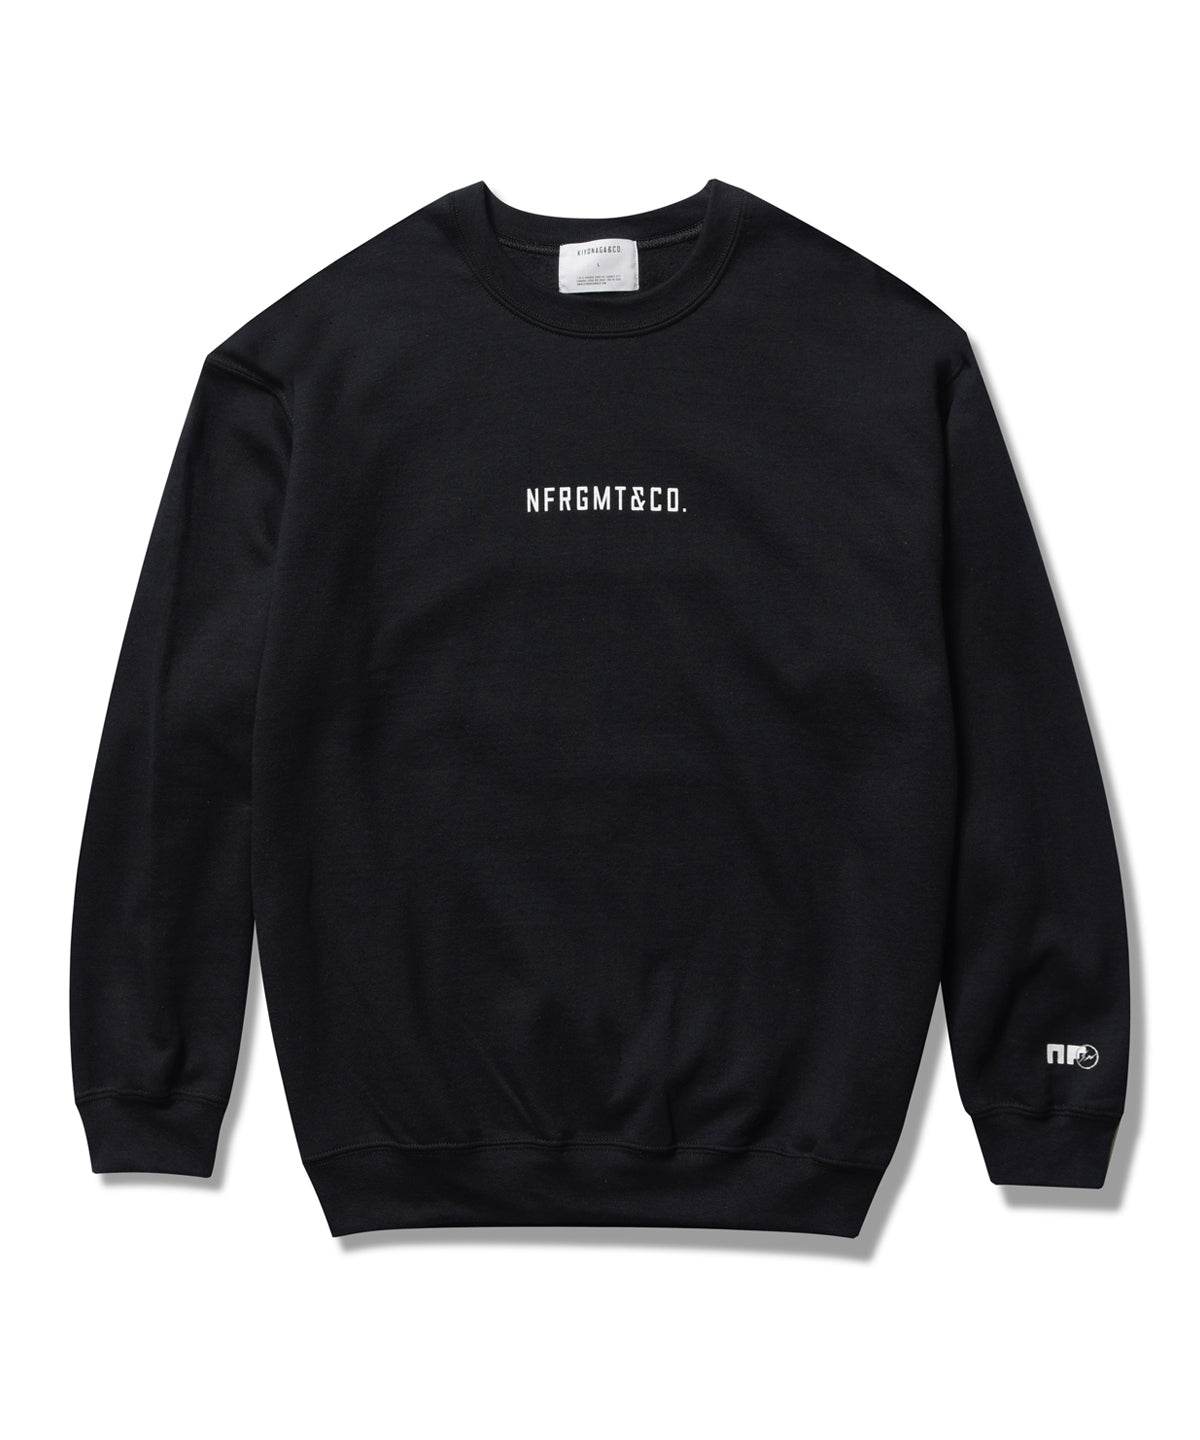 NFRGMT&CO. CREWNECK SWEAT